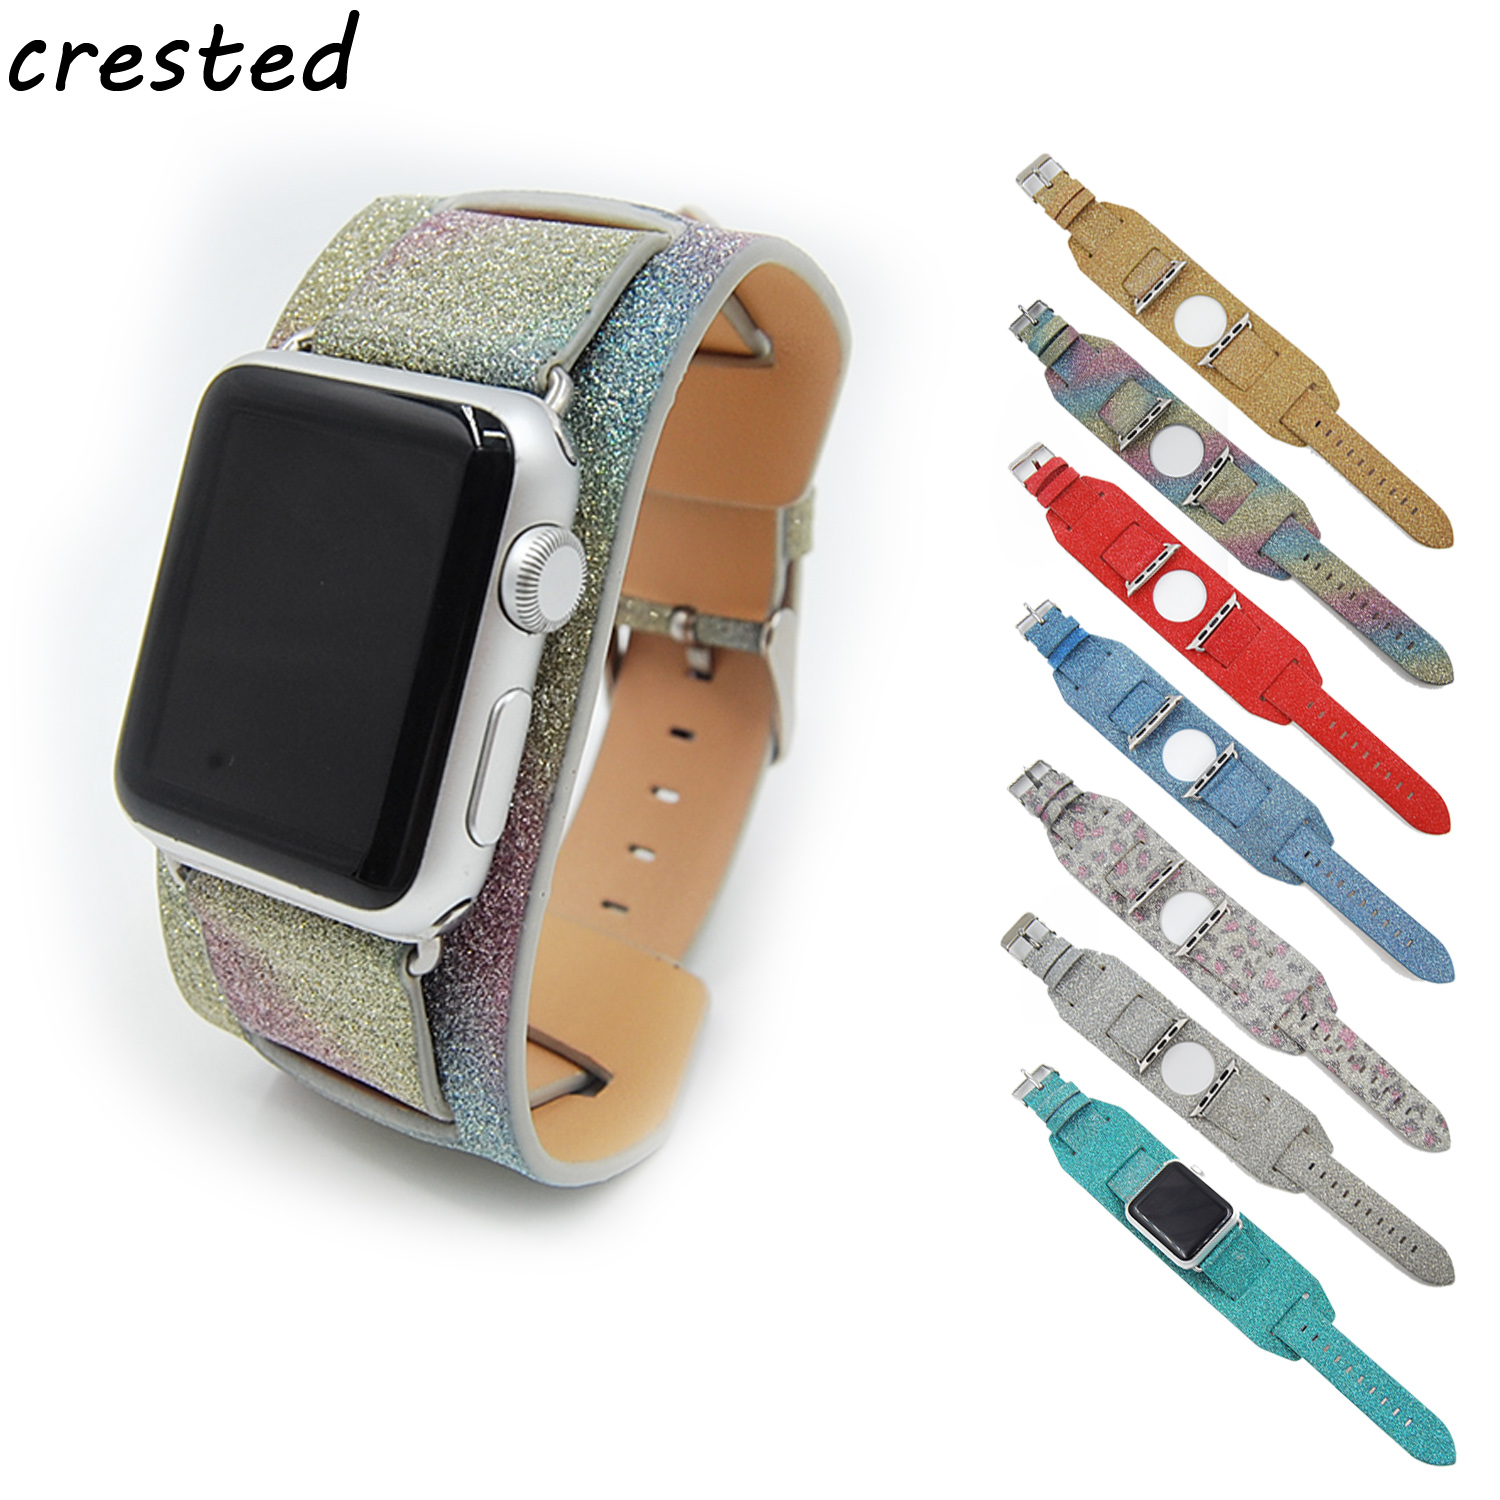 CRESTED leather loop watch strap for apple watch band 42mm/38 Cuff Bracelet for iwatch 1/2 band link Bracelet  flash bracelet crested leather loop band for apple watch 42mm 38mm